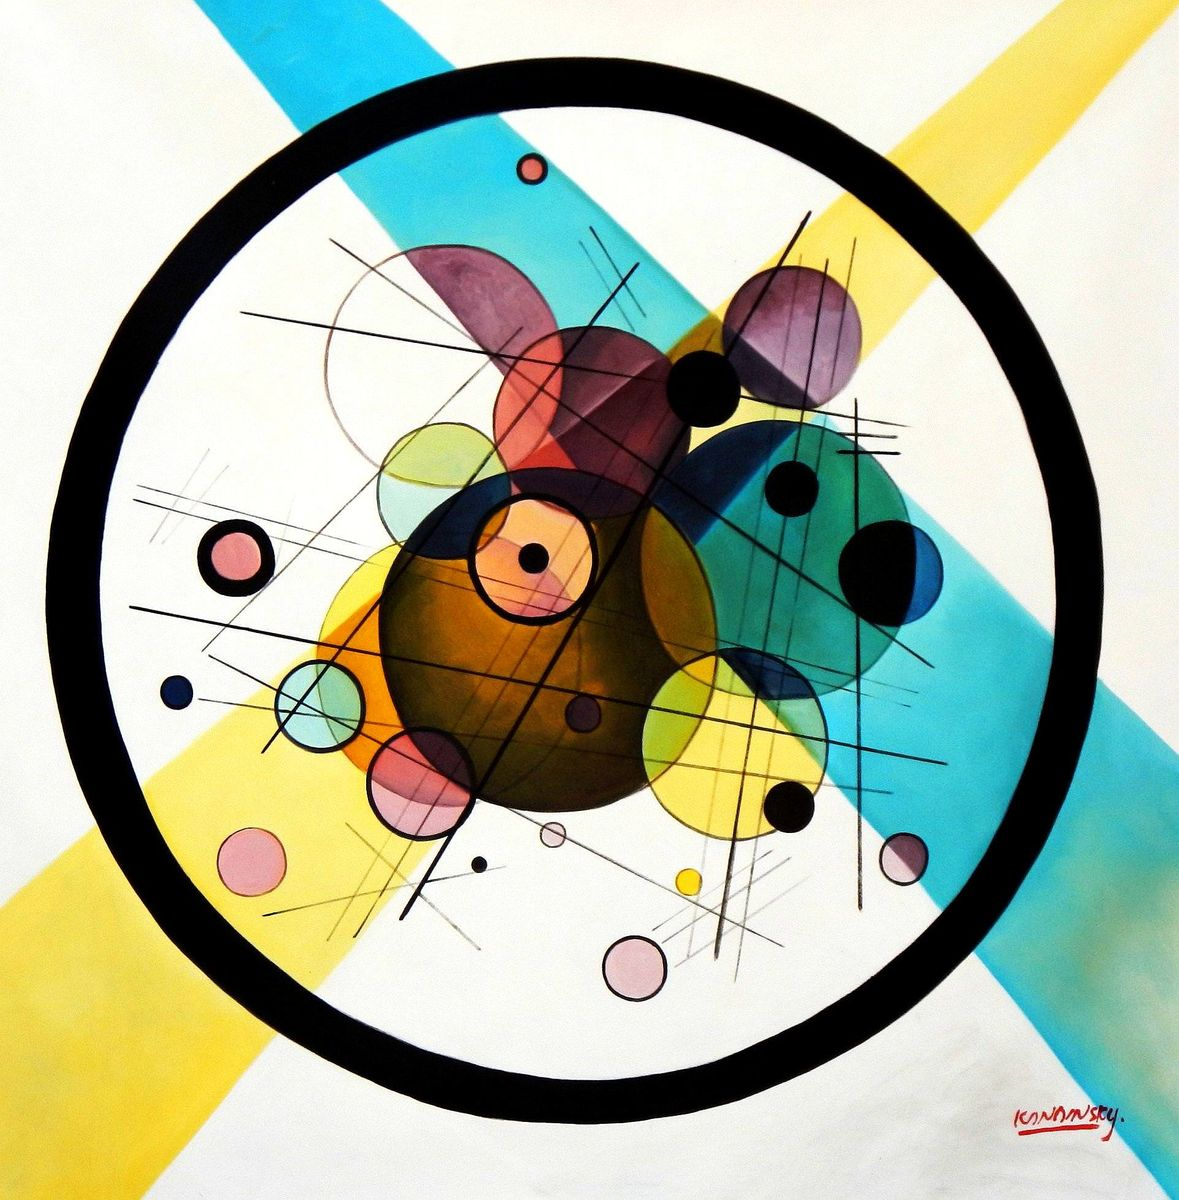 Homage to Kandinsky - Variation der Querlinie m94088 120x120cm exquisites Gemälde